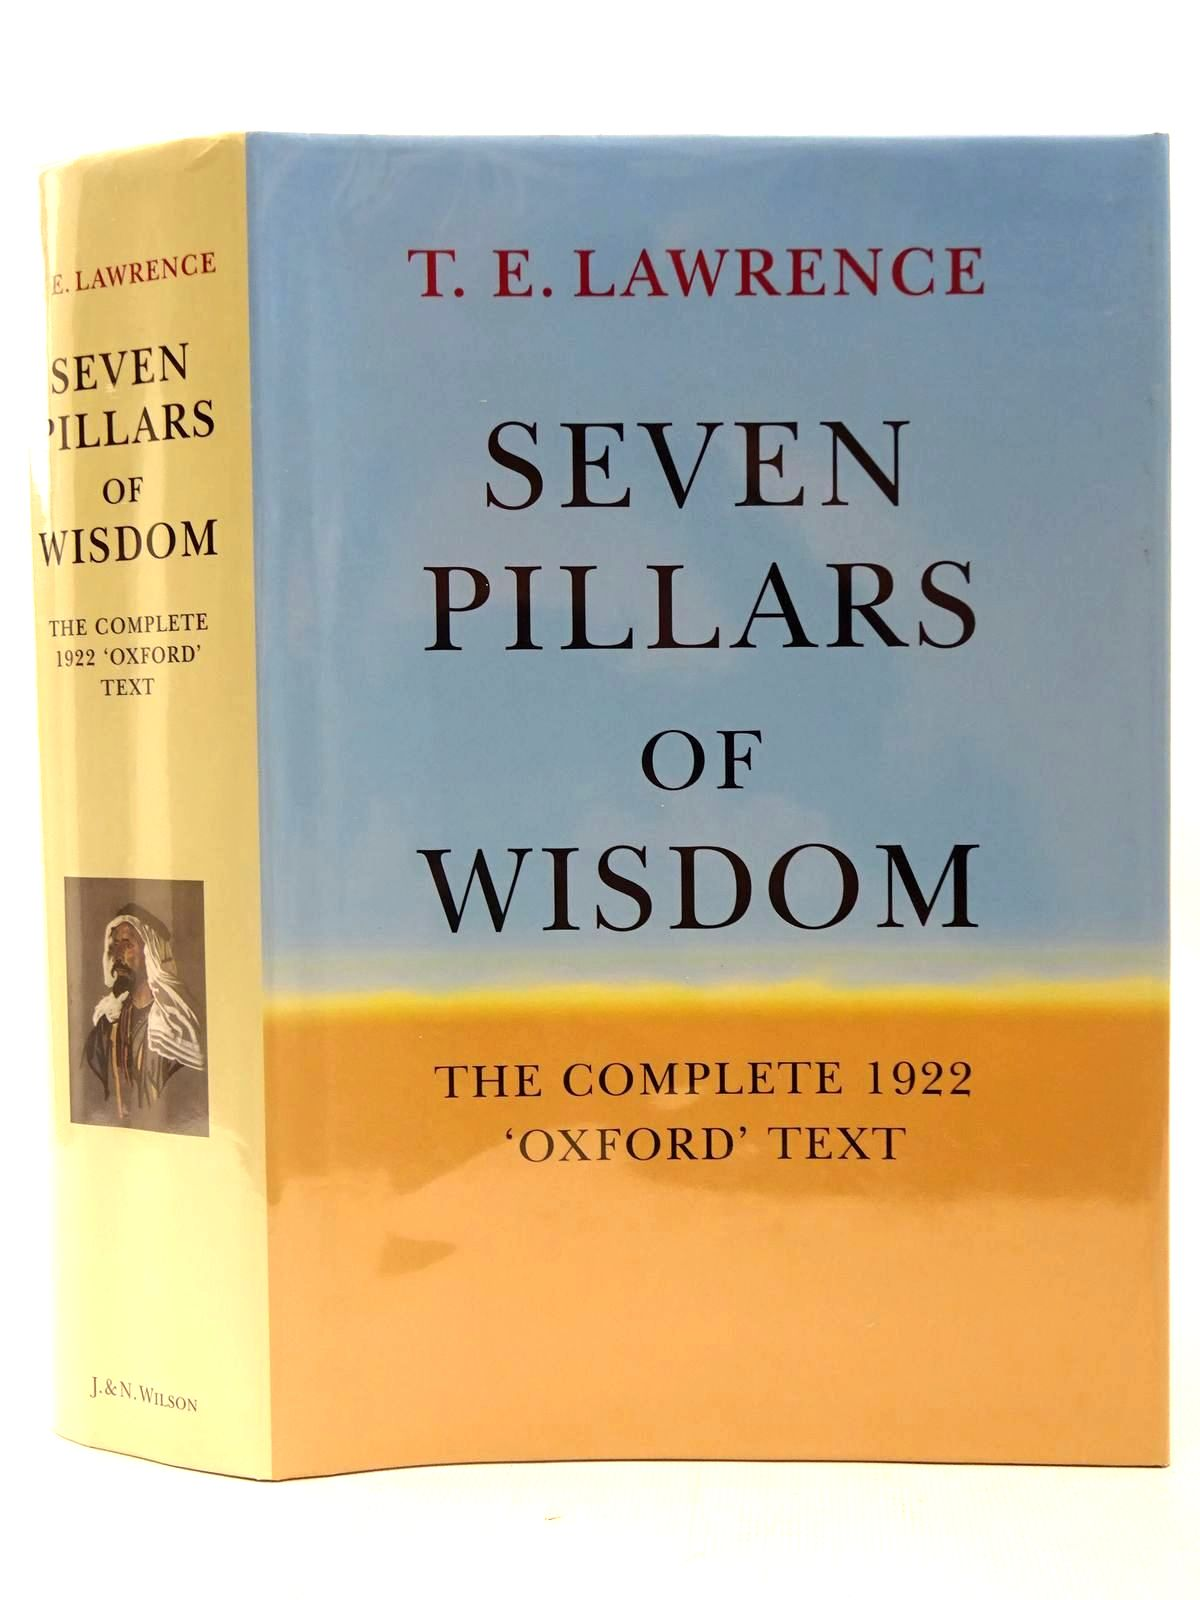 Photo of THE COMPLETE 1922 SEVEN PILLARS OF WISDOM THE 'OXFORD' TEXT